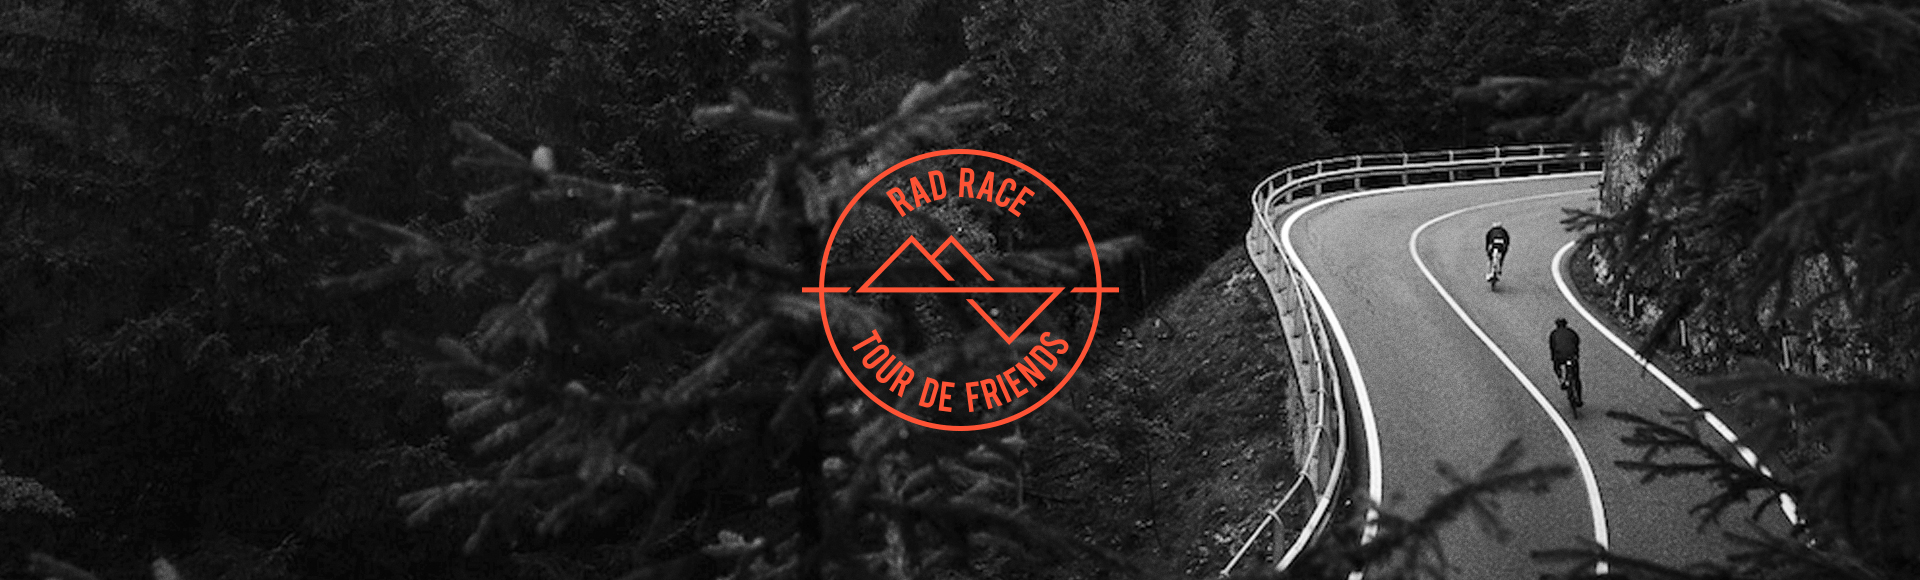 rad race tour de friends 2018